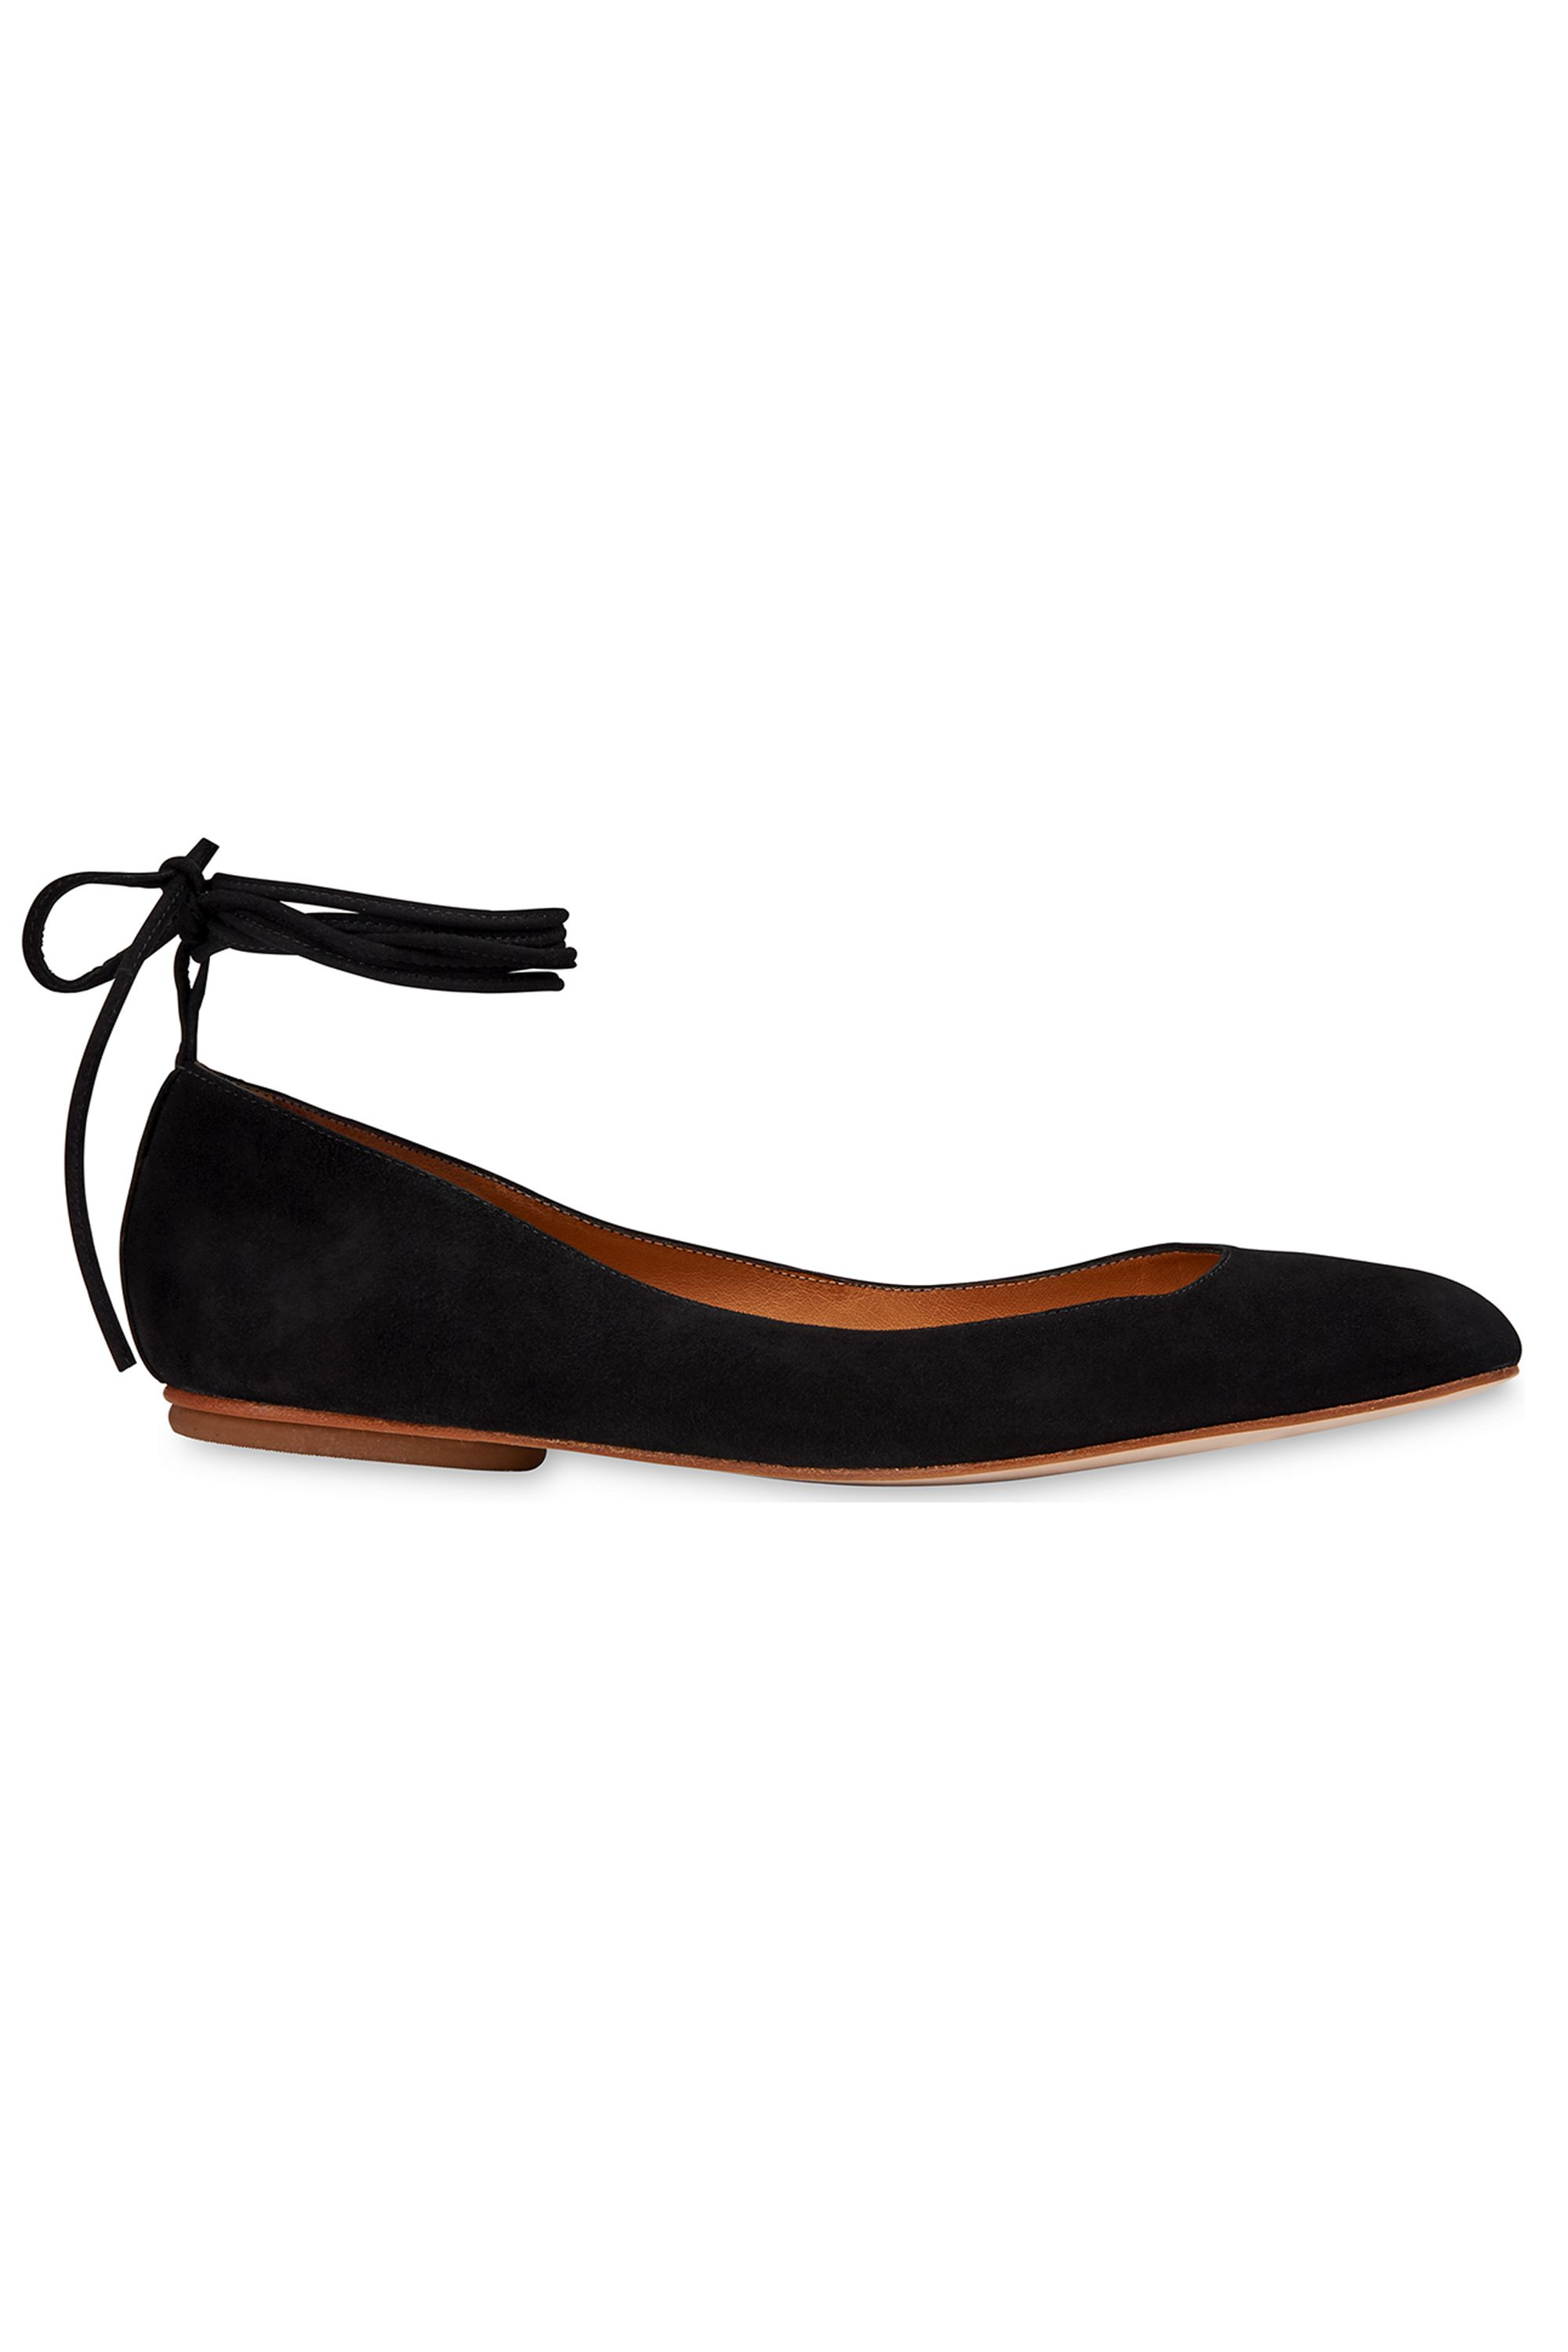 Ghillie shoes, best Ghillie shoes, lace up flats